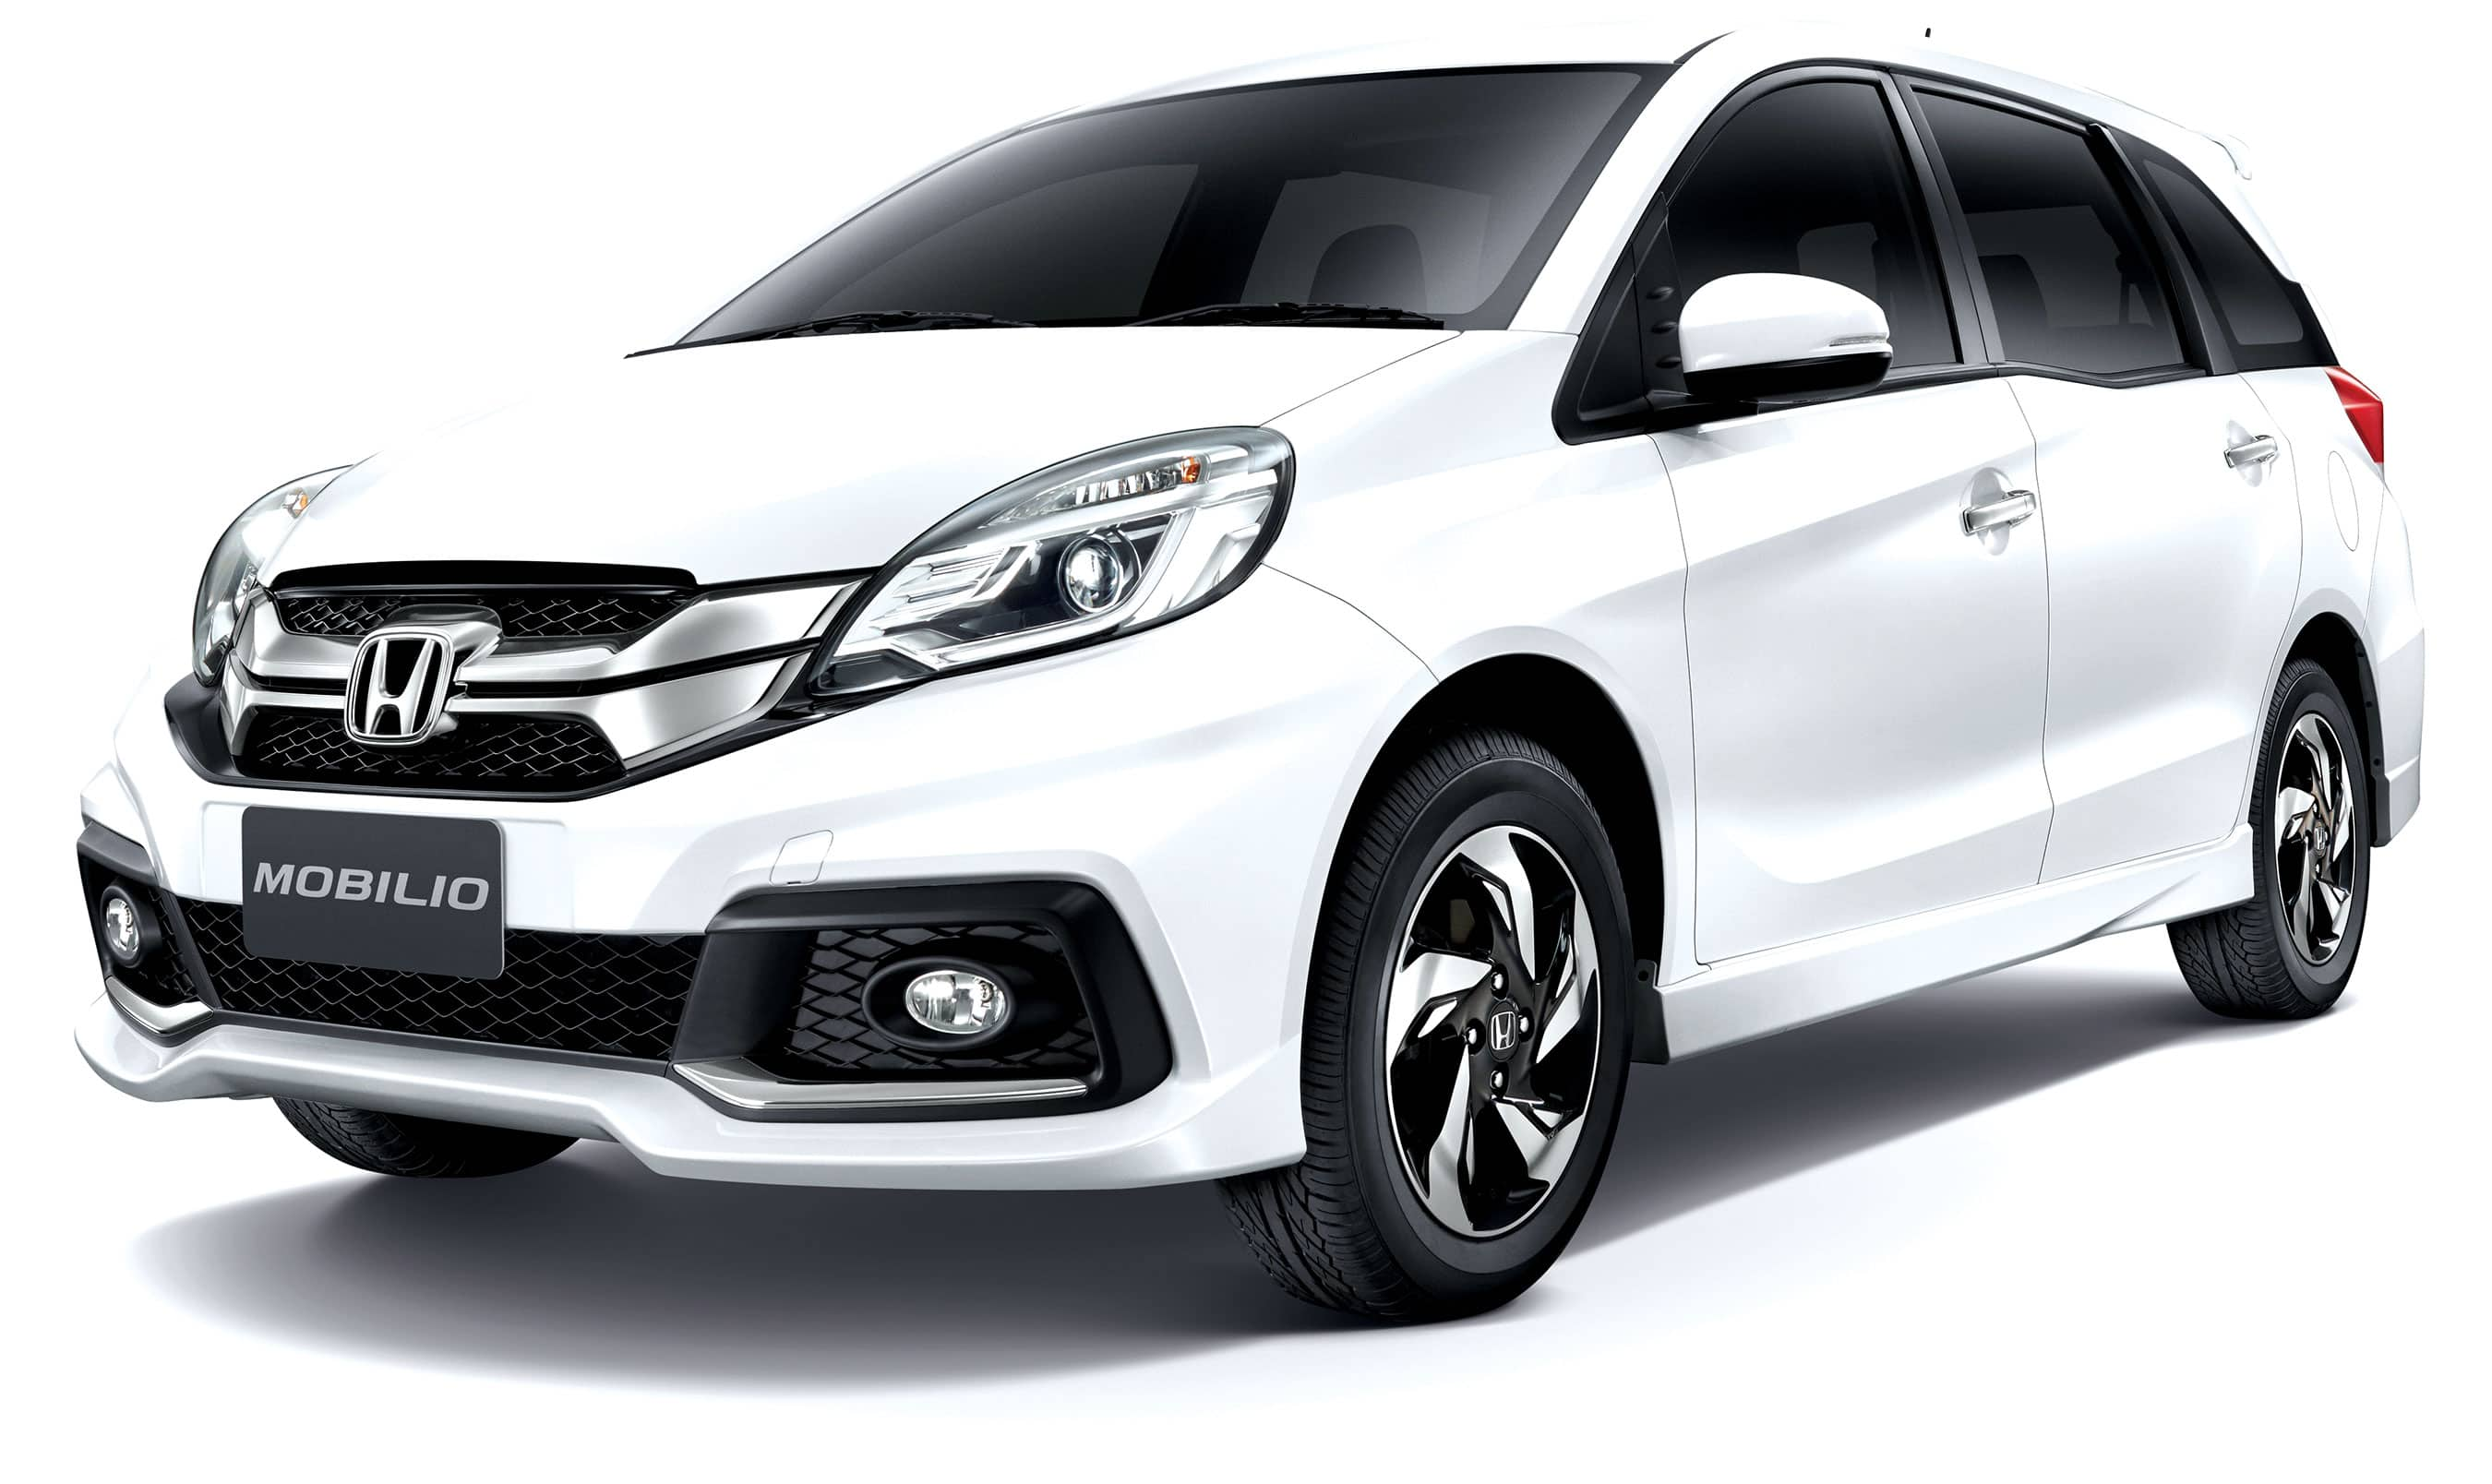 Honda Halts The Production Of The Mobilio Mpv In India